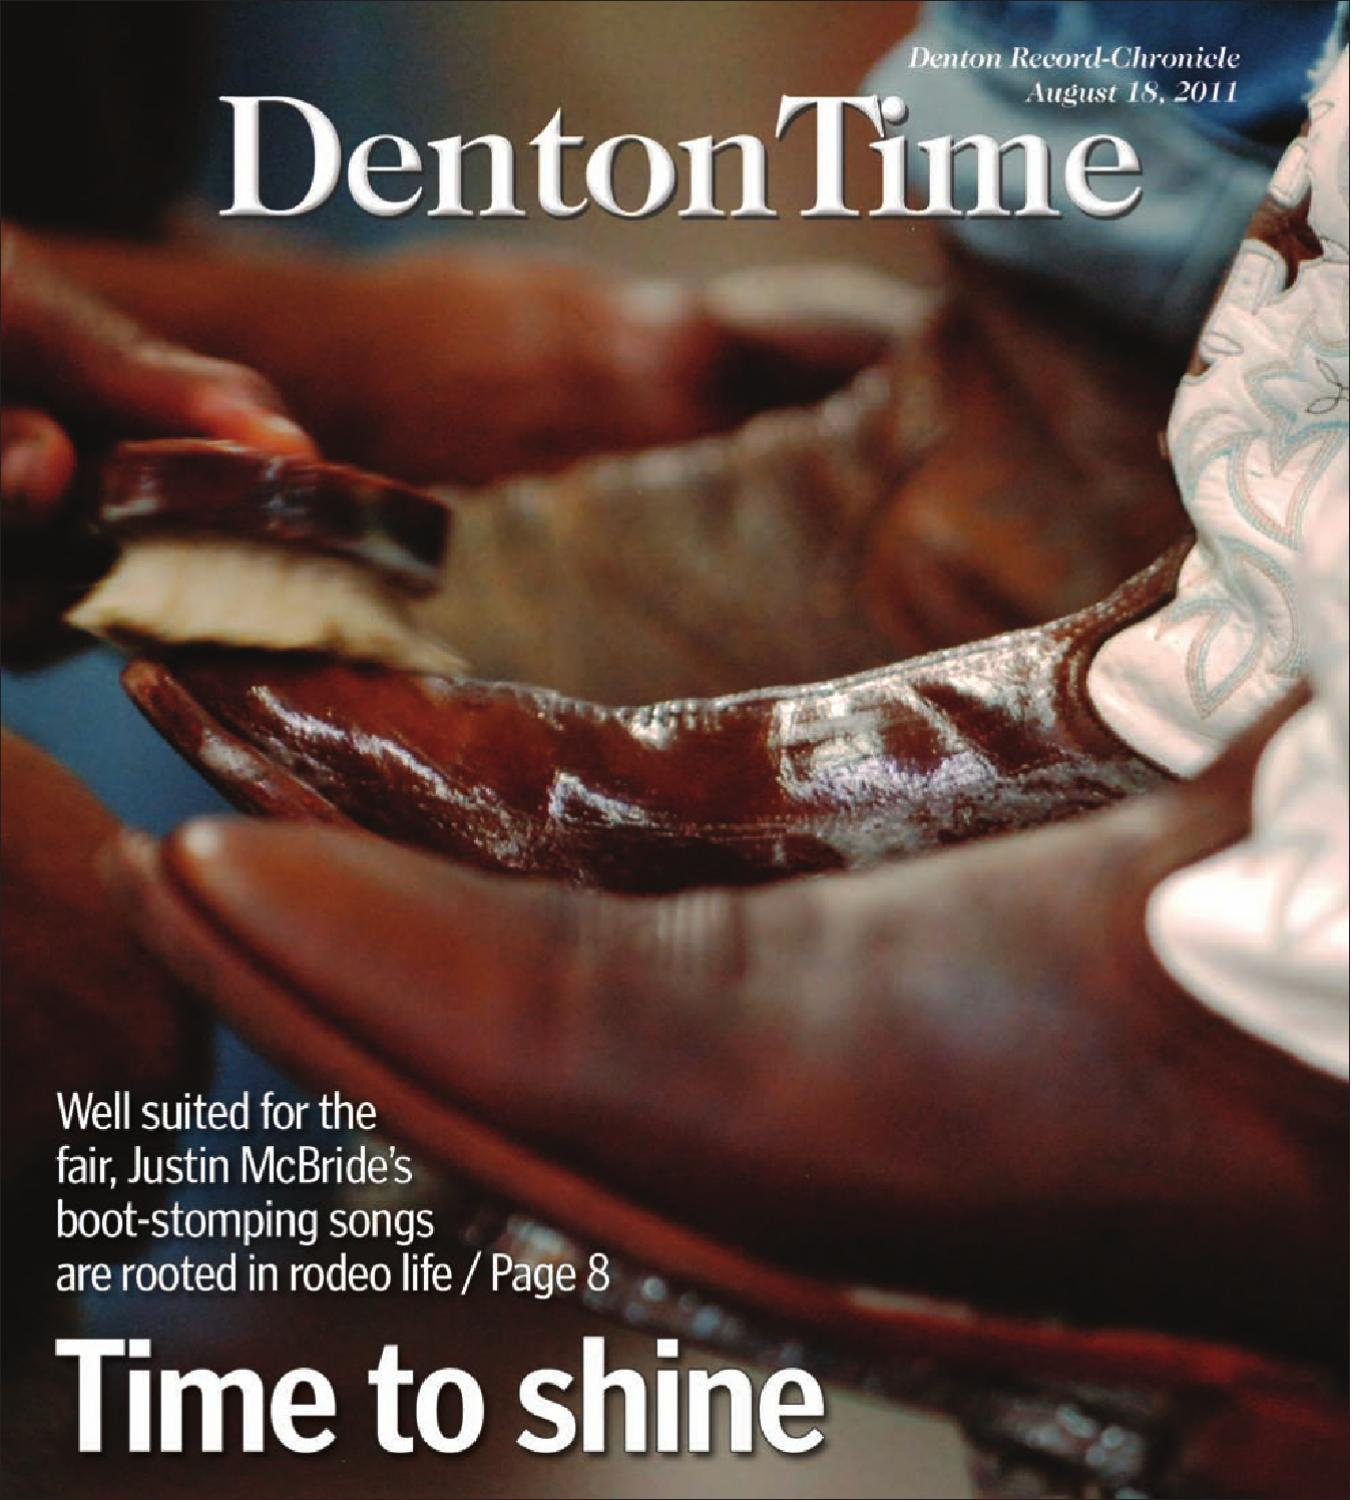 August 18 Denton Time 2011 by Larry McBride - issuu